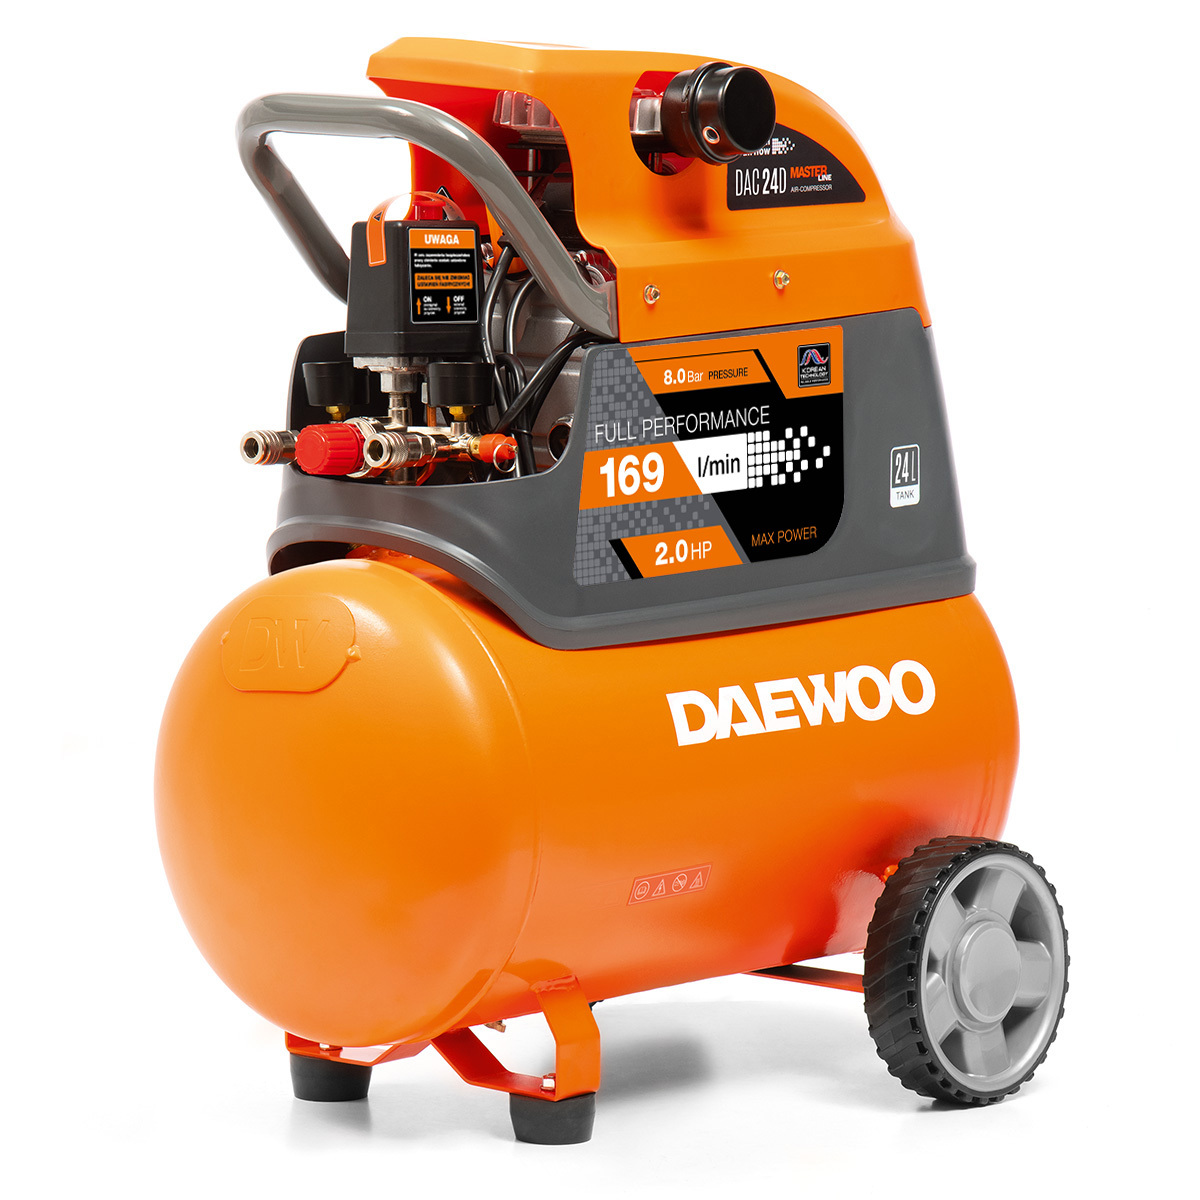 Air Compressor Daewoo DAC 24D